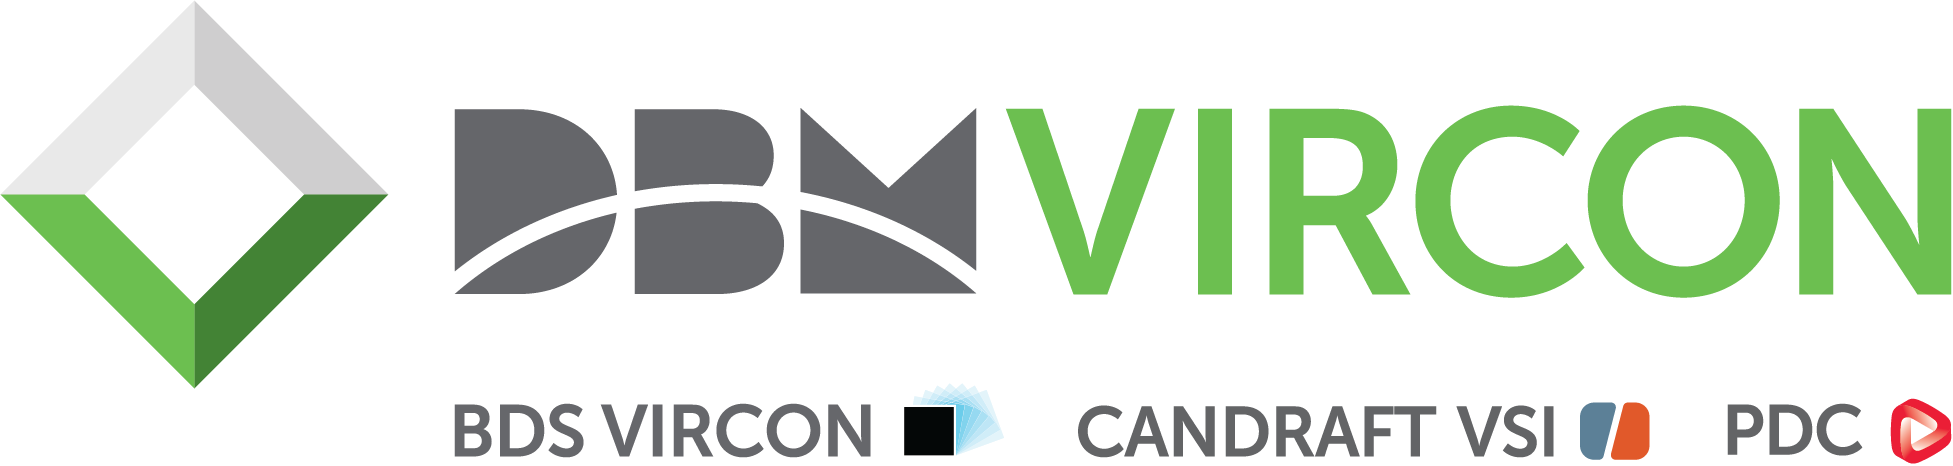 DBM Vircon – Rebrand of PDC Group, BDS Vircon & CandraftVSI